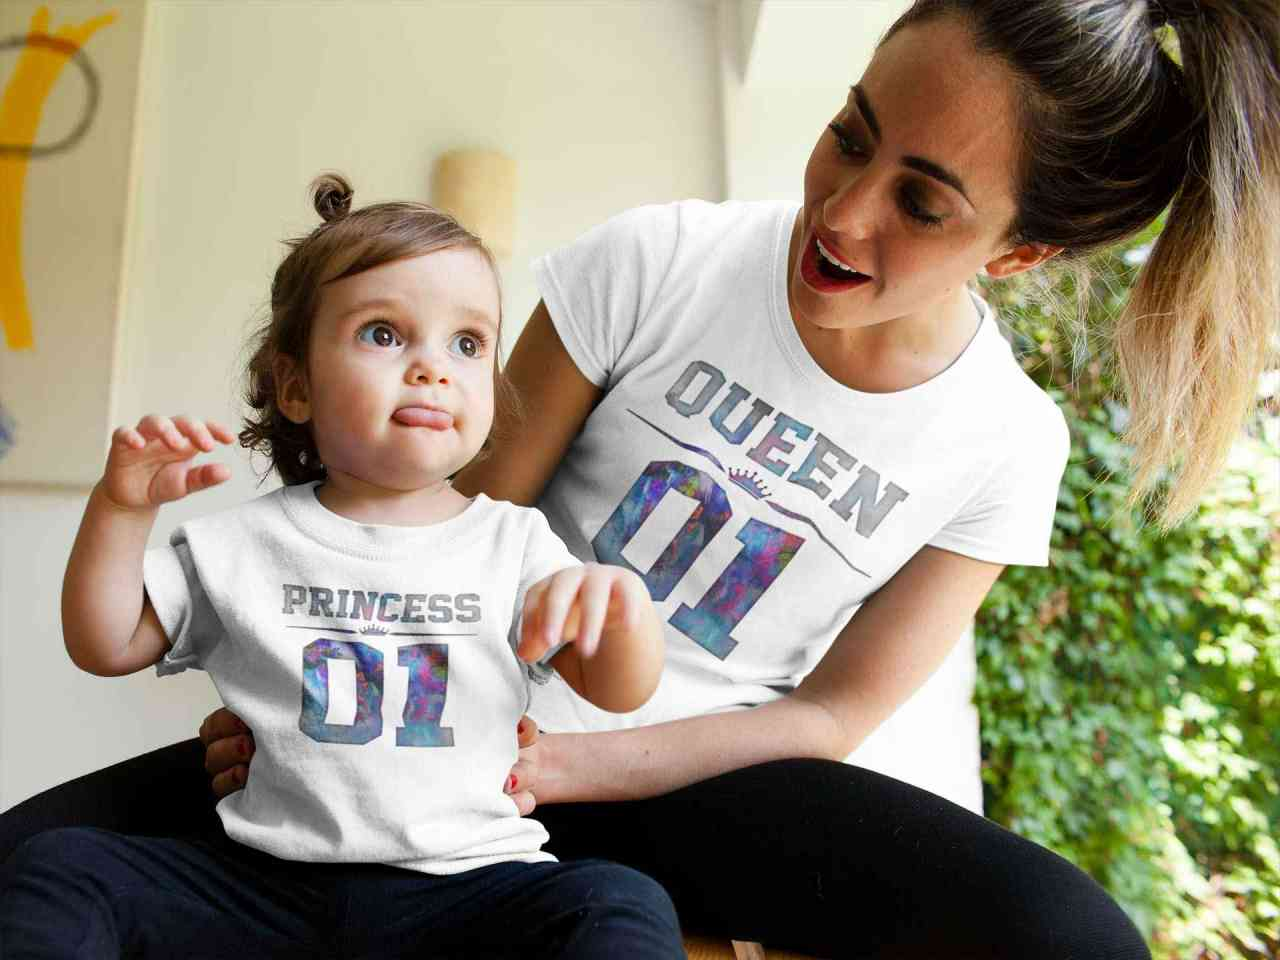 Queen & Princess Partnerlook T-Shirt Set | Mama Tochter Partnerlook